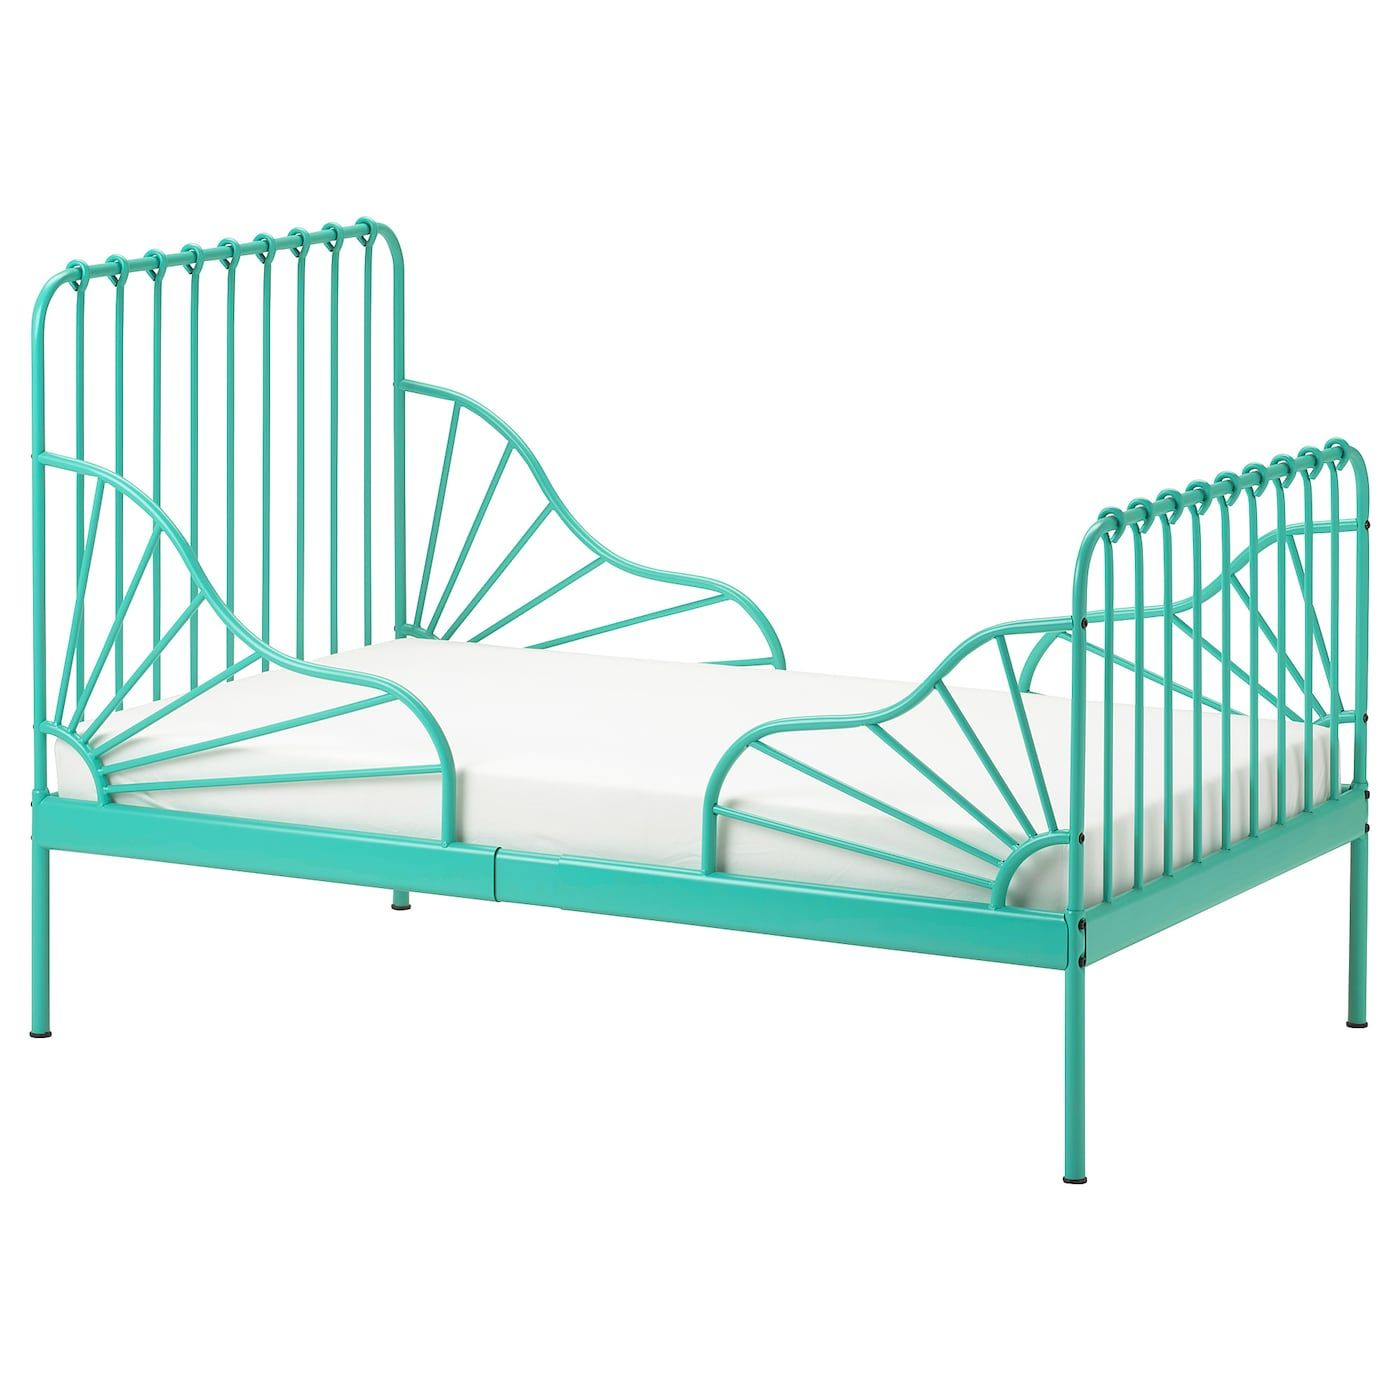 MINNEN Ext bed frame with slatted bed base turquoise 38